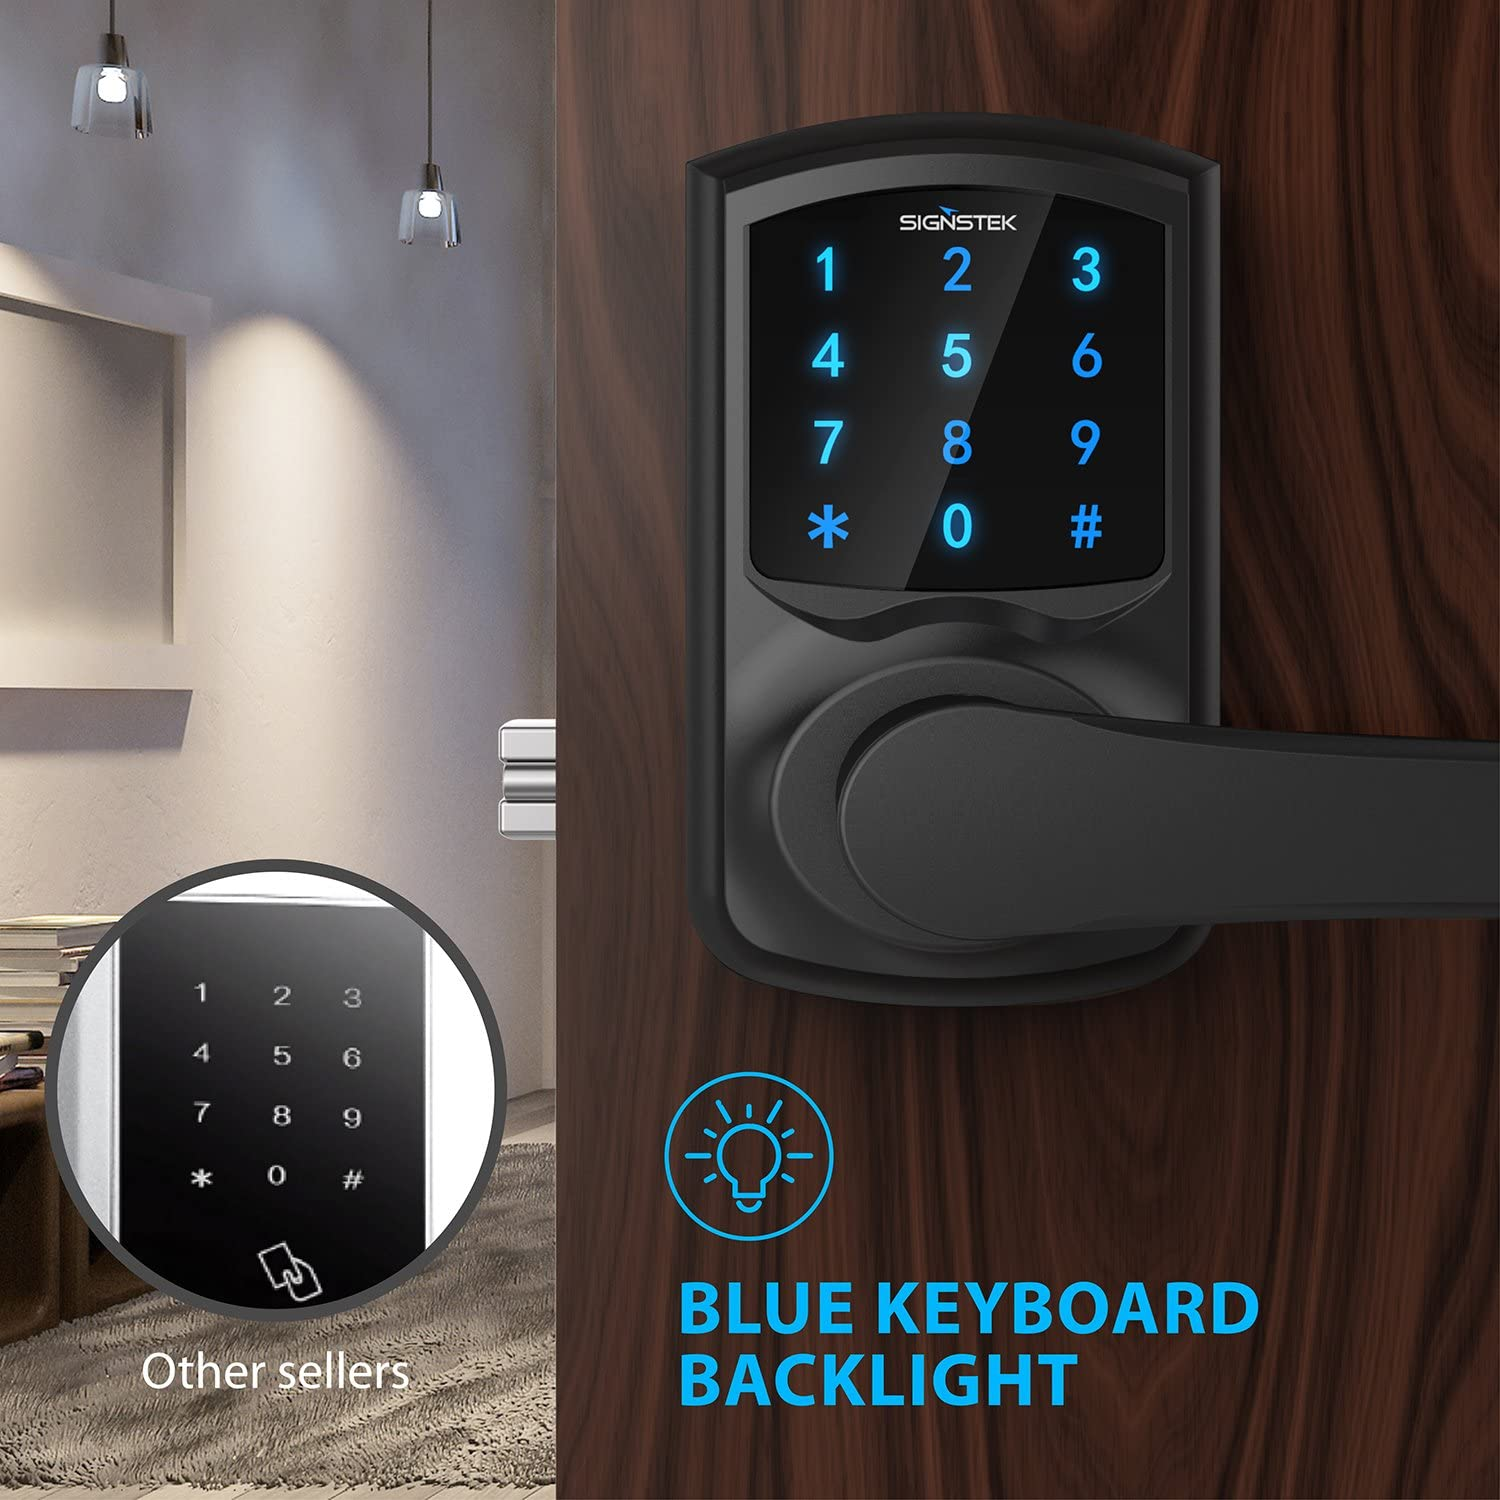 Signstek Digital Electronic Touchscreen Keypad Security Entry Door Lock for Left or Right Door Handle with Hidden Mechanical Key Black